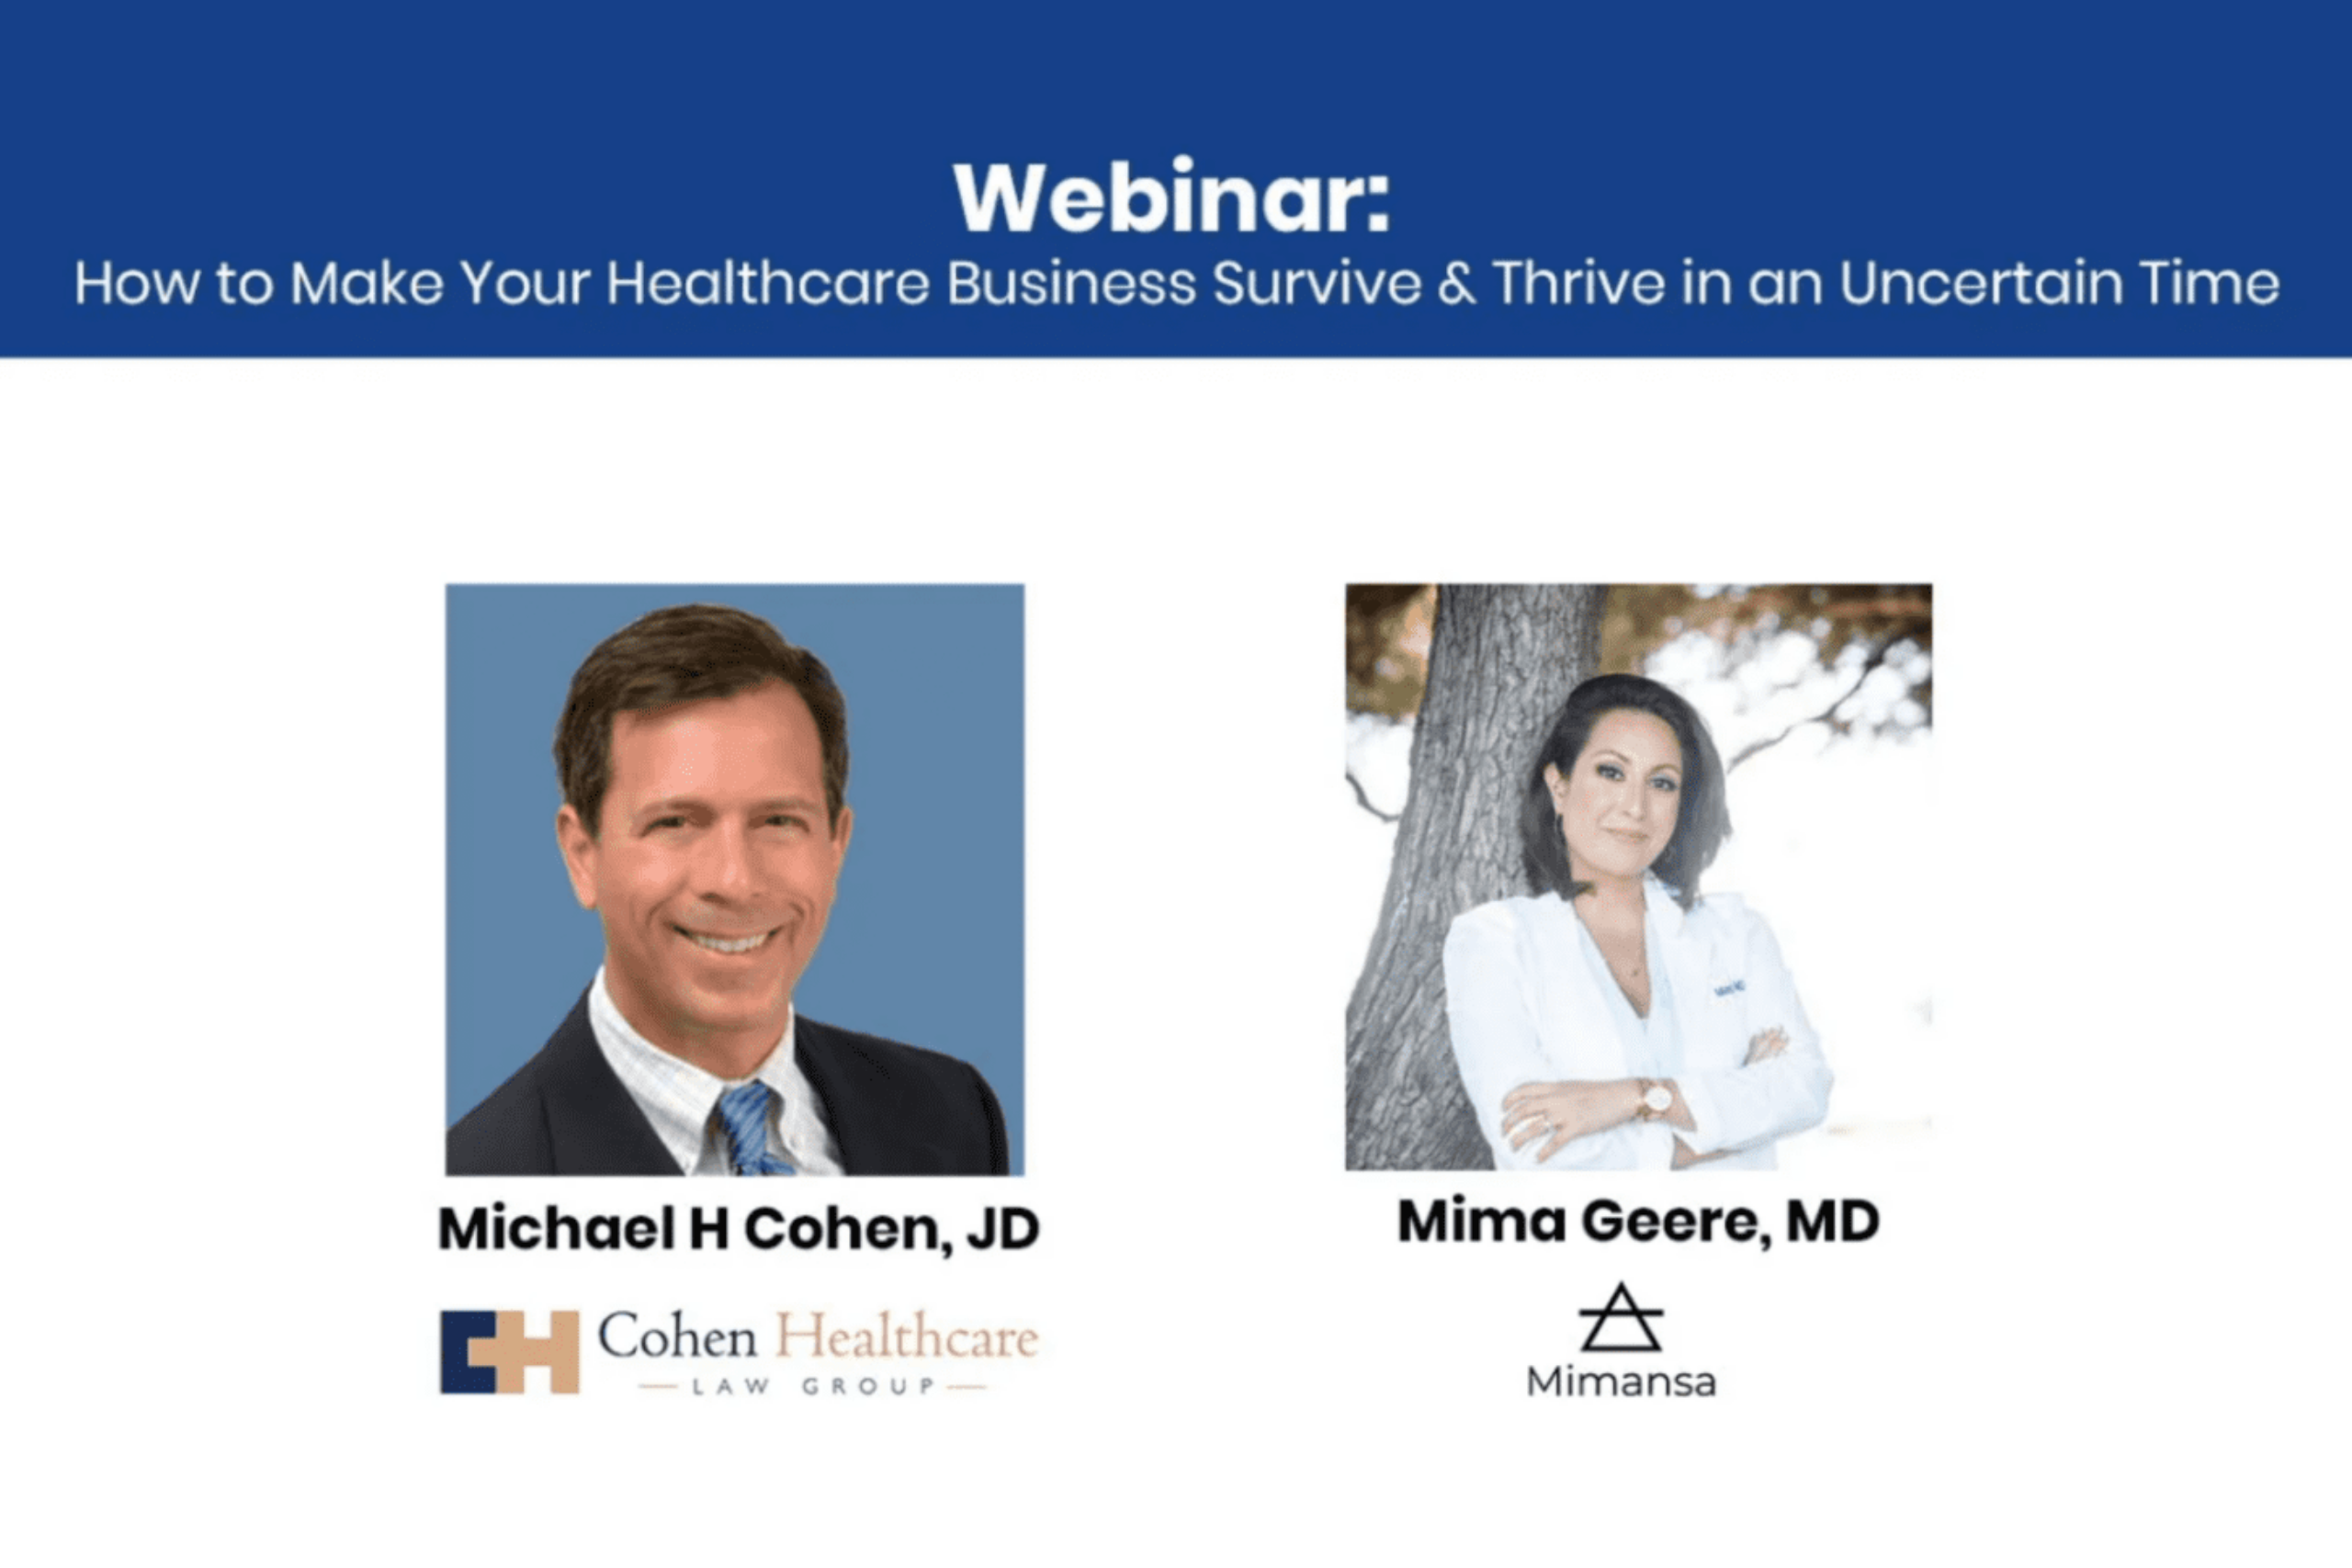 How to Help Your Healthcare Business Survive & Thrive in an Uncertain Time Through Telemedicine